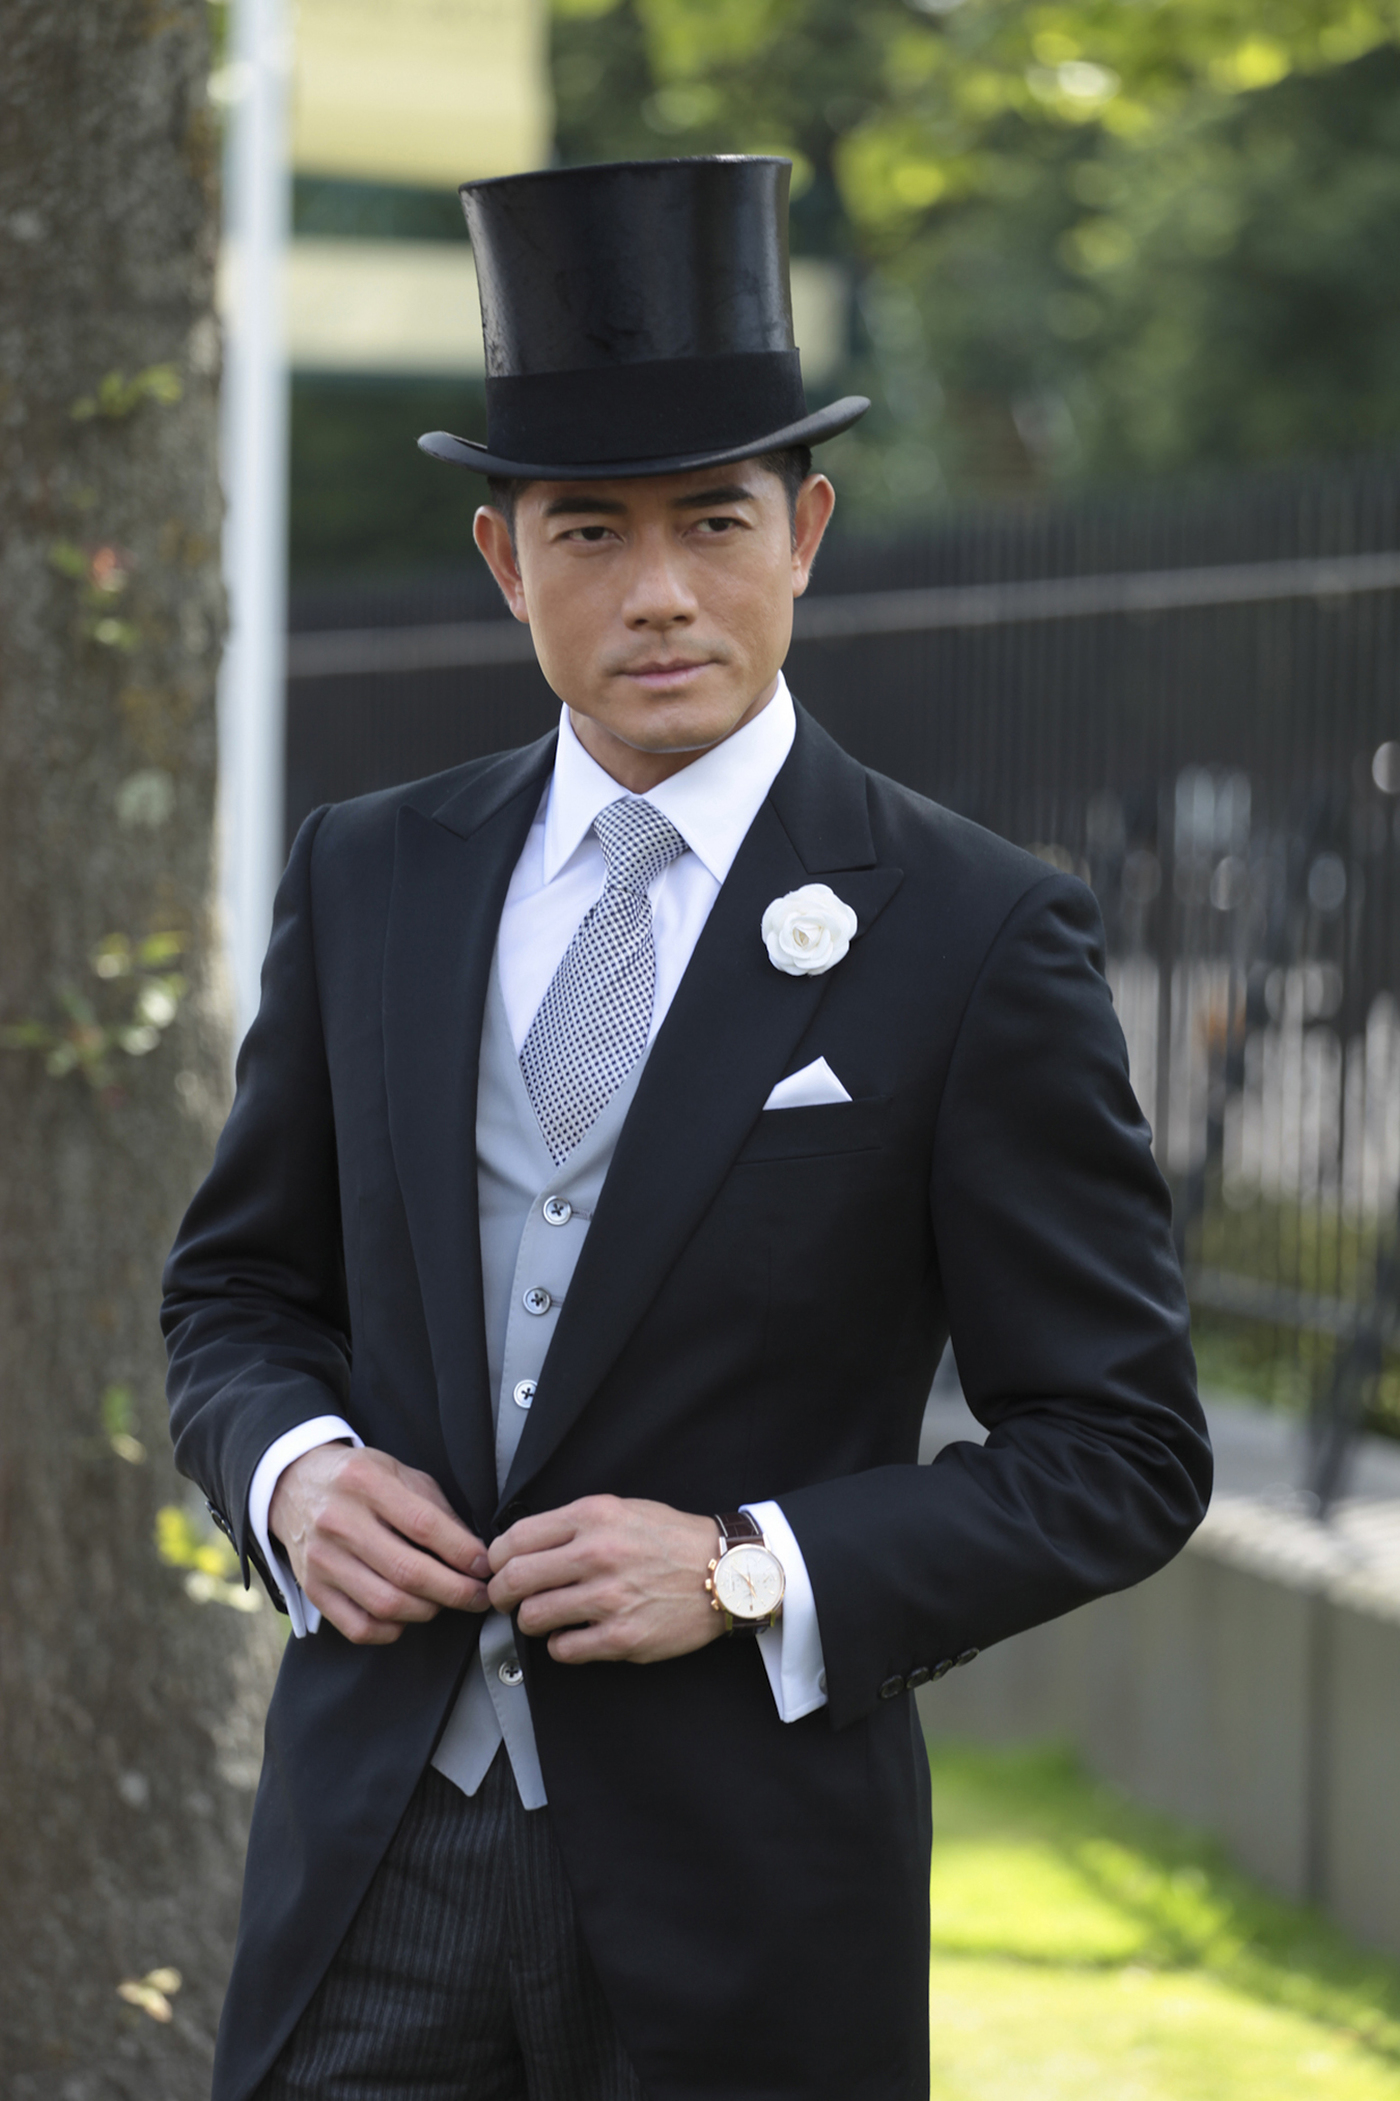 Longines Flat Racing Event: A day of glamour at Ascot with Aaron Kwok, Longines ambassador of Elegance 7